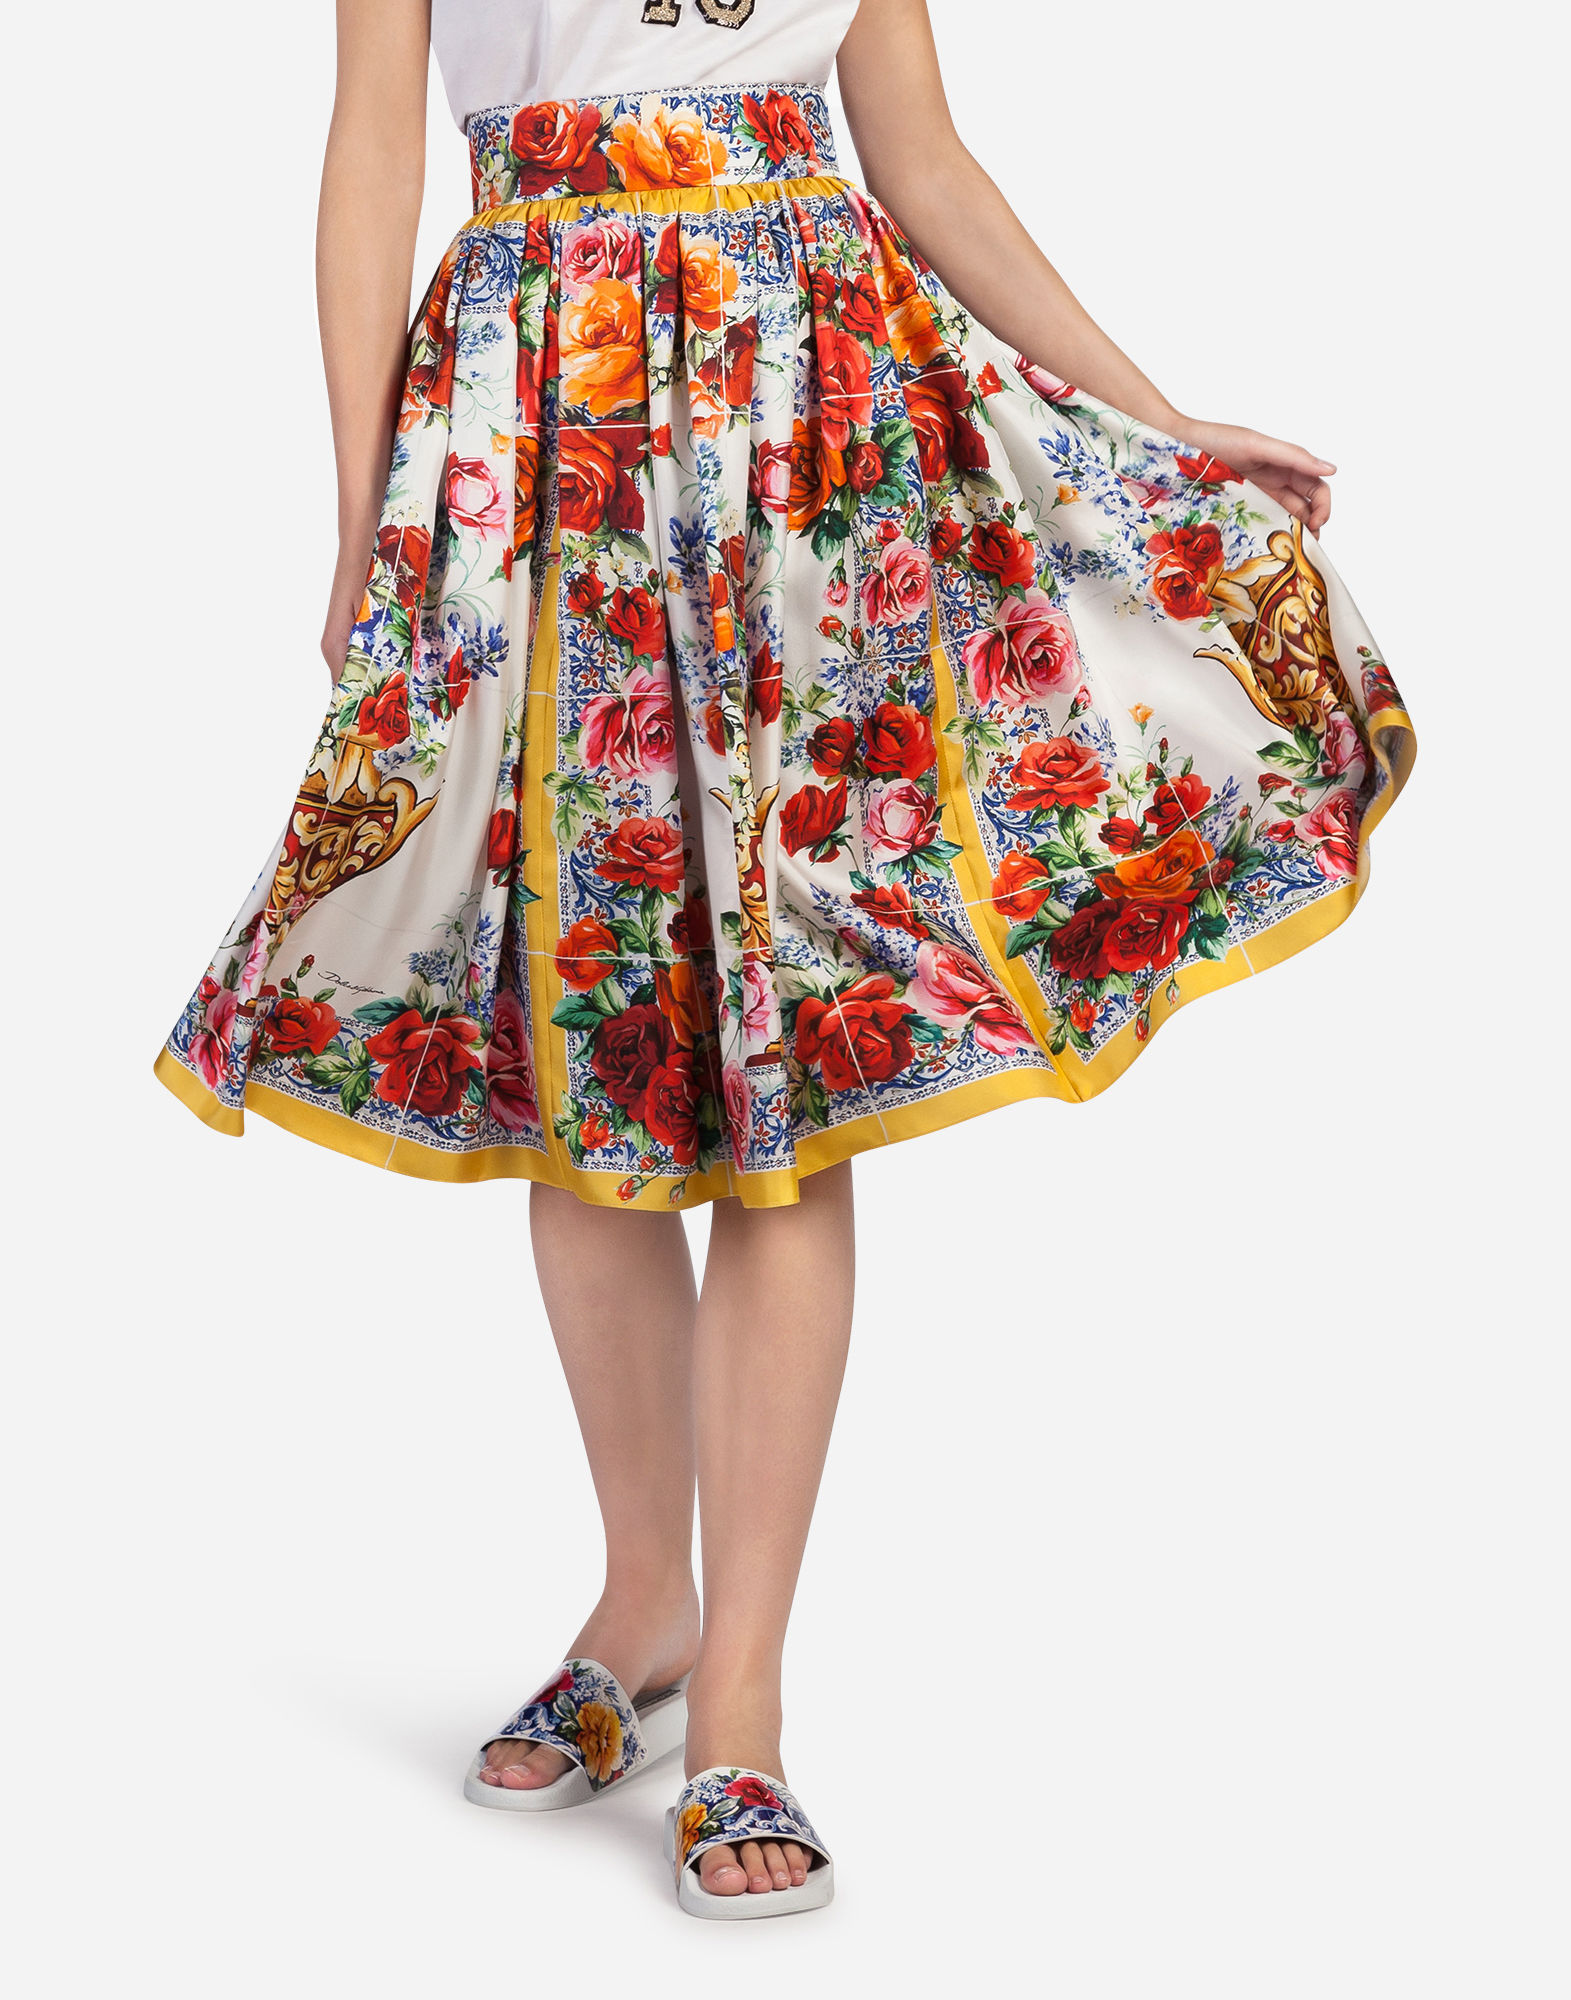 Dolce & Gabbana Floral-Print Silk-Twill Midi Skirt In Multicolor